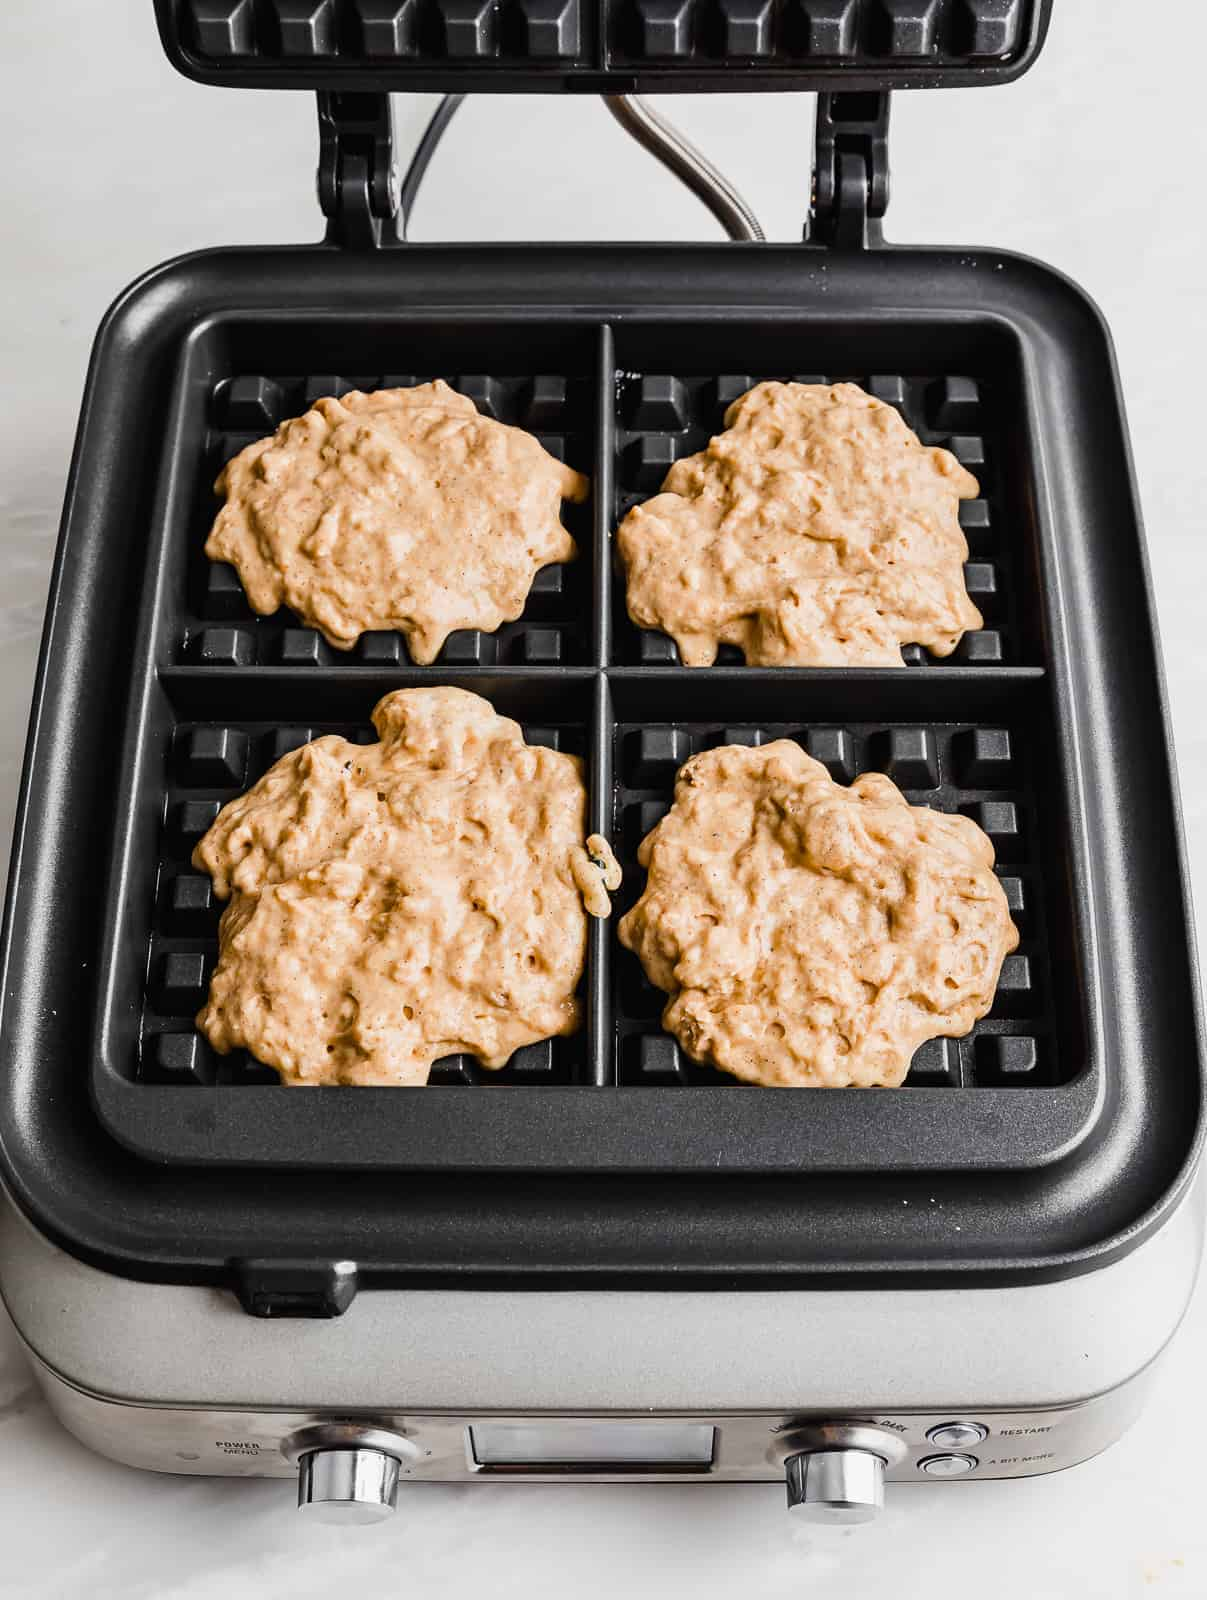 A square waffle iron with pumpkin waffle batter in the 4 waffle compartments.